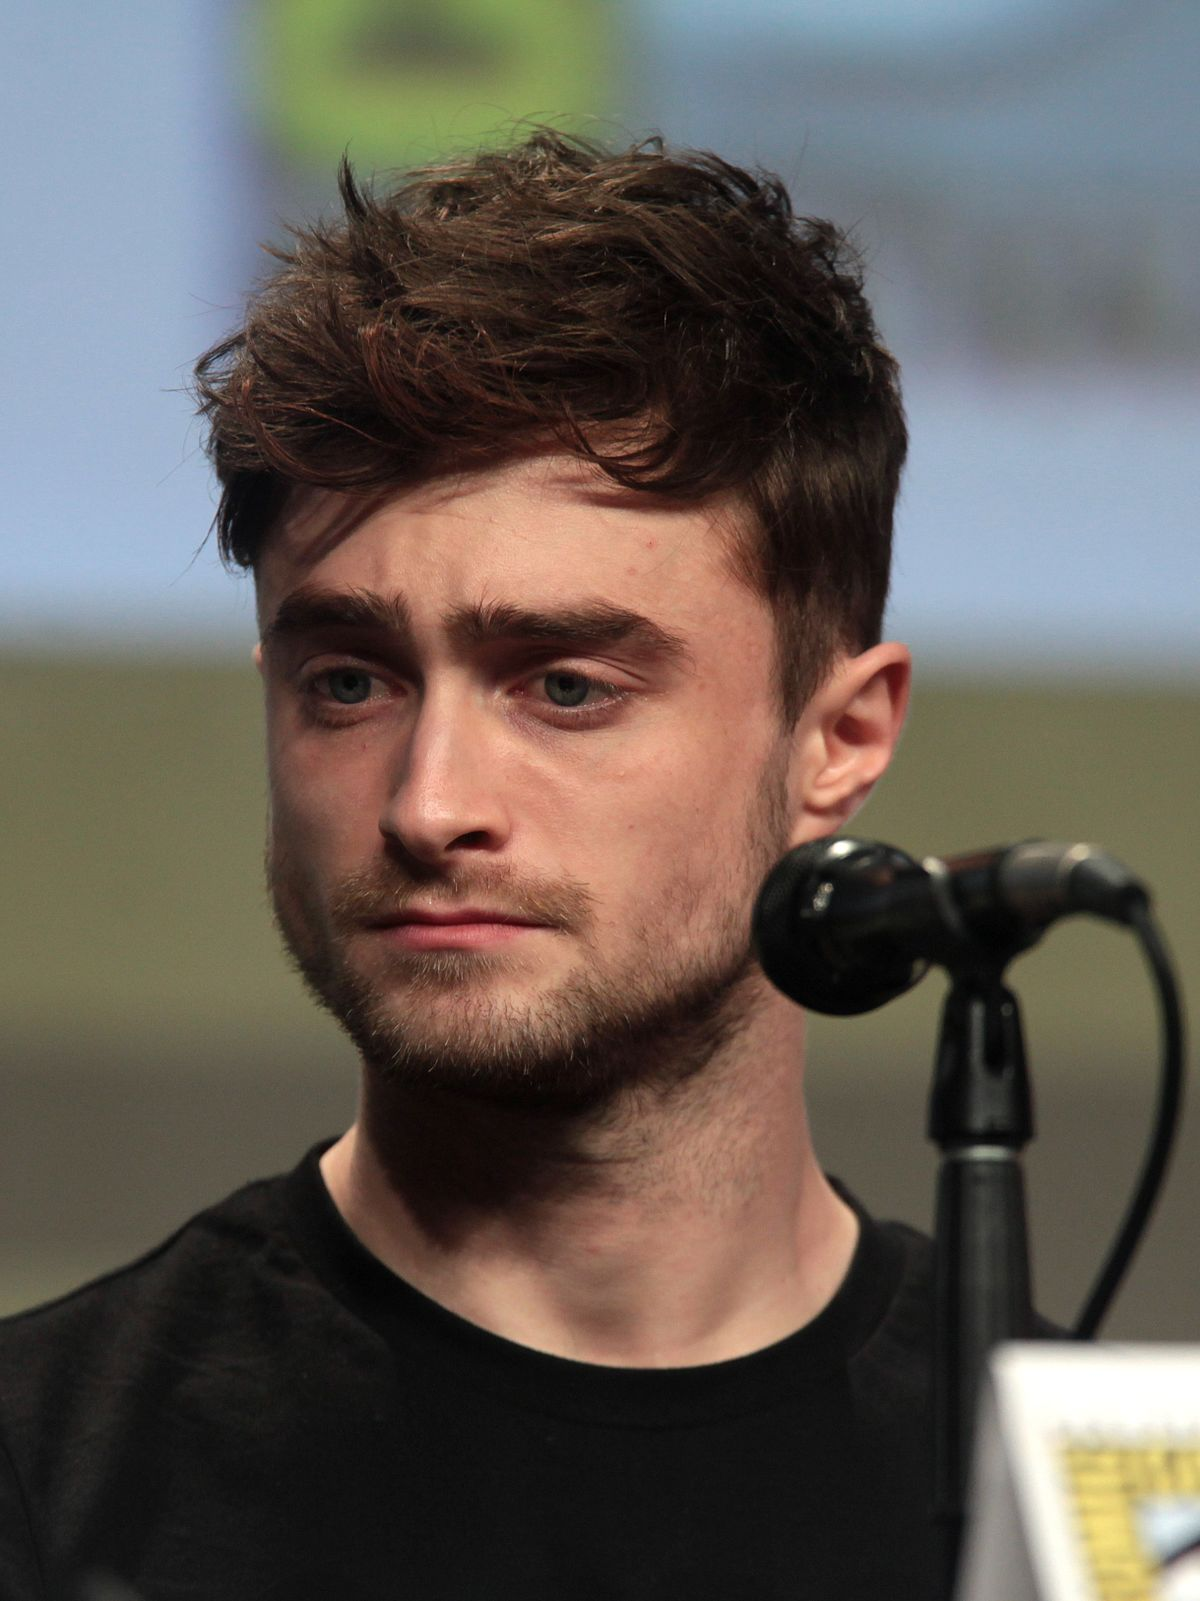 Daniel Radcliffe on screen and stage - Wikipedia Daniel Radcliffe